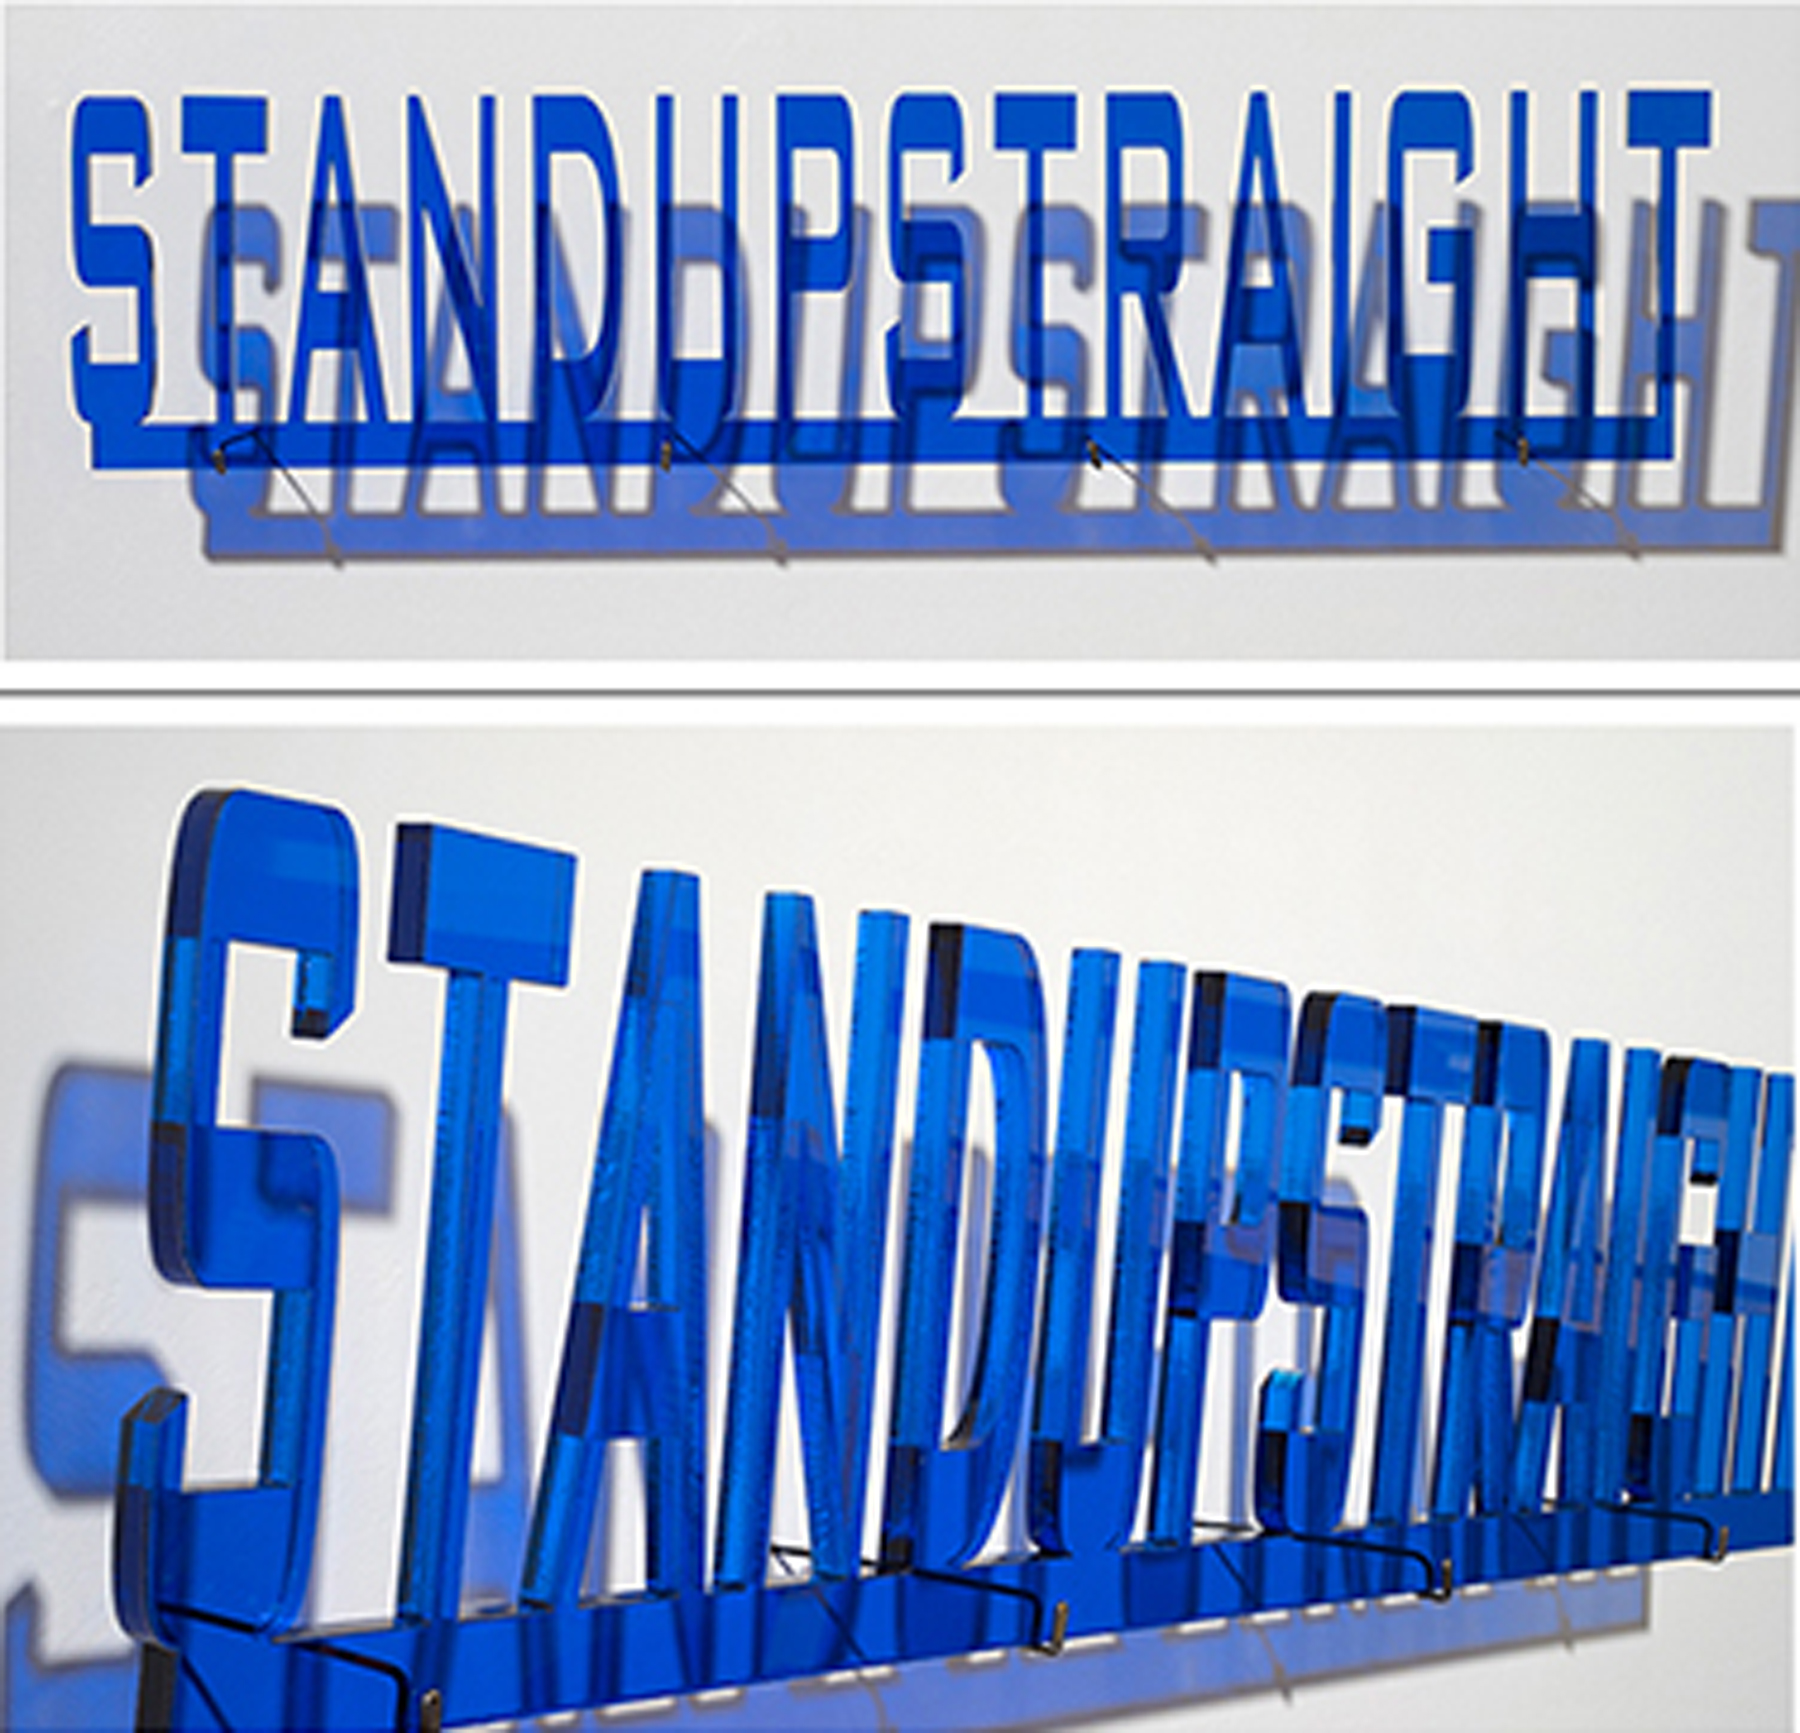 JUDY GELLES | Stand Up Straight, 8 x 35 inches / 20.3 x 88.9 cm, plexiglass, edition 1/7, 2014